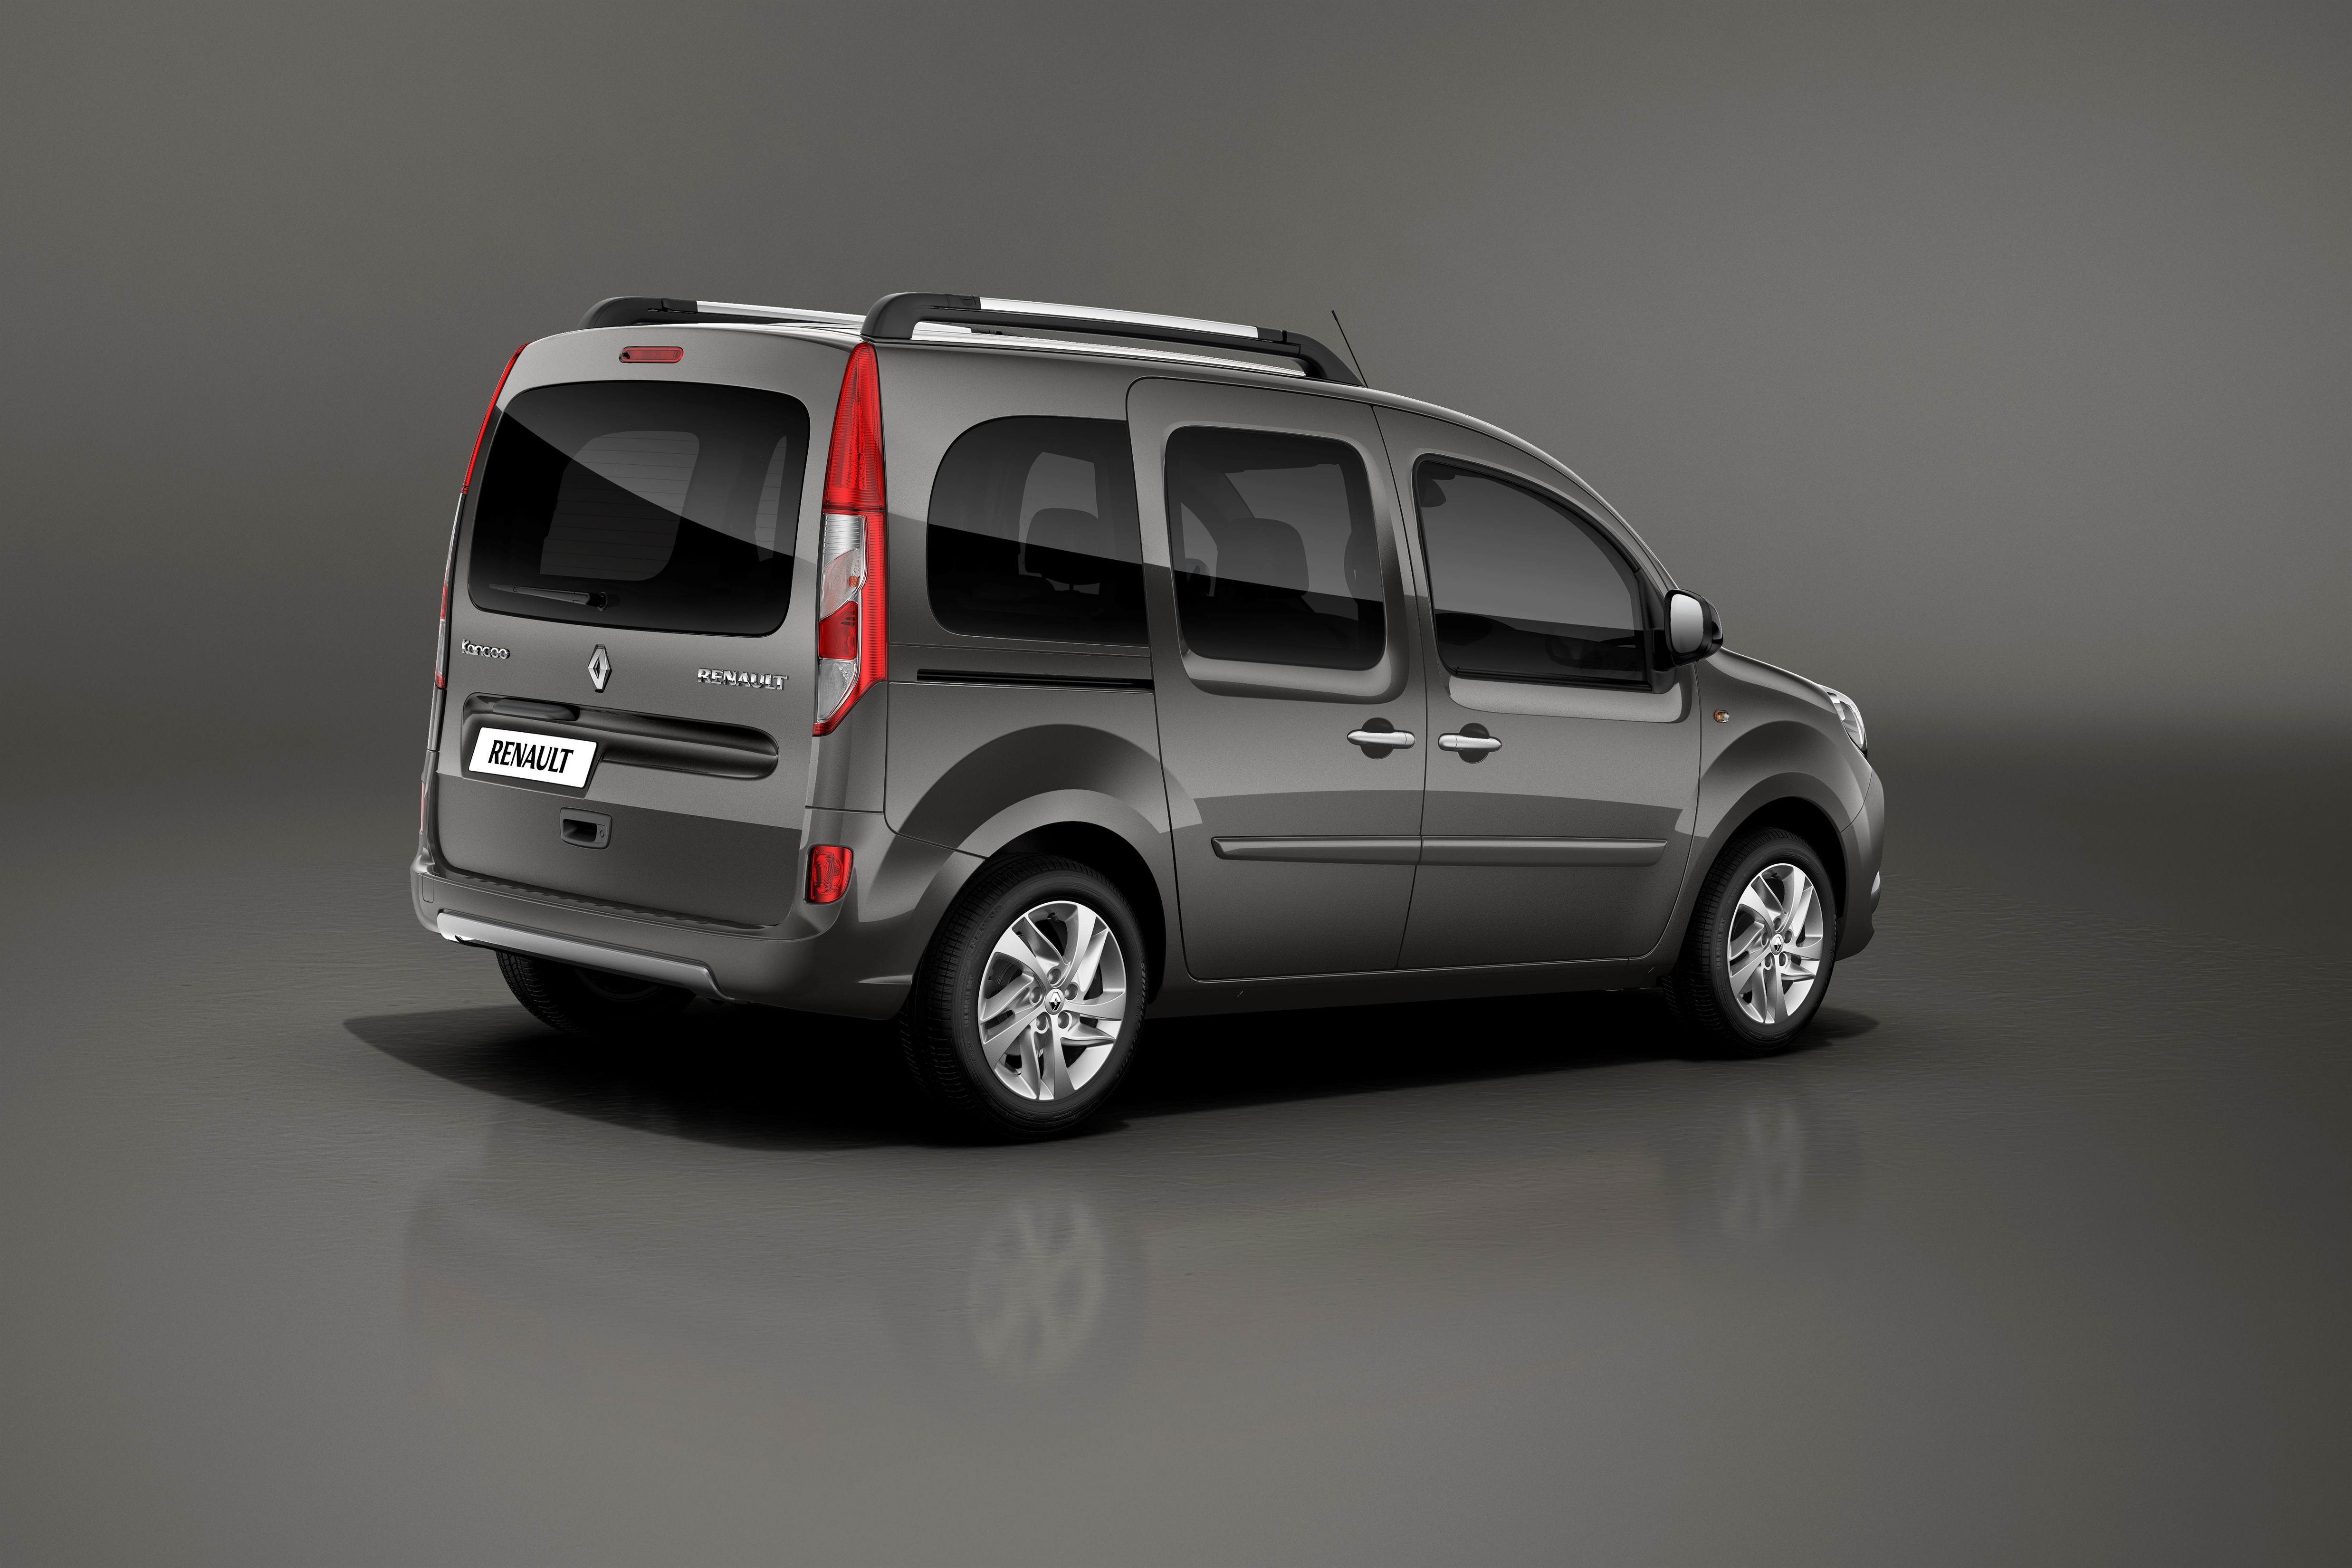 nouveaux renault kangoo et grand kangoo les tarifs. Black Bedroom Furniture Sets. Home Design Ideas